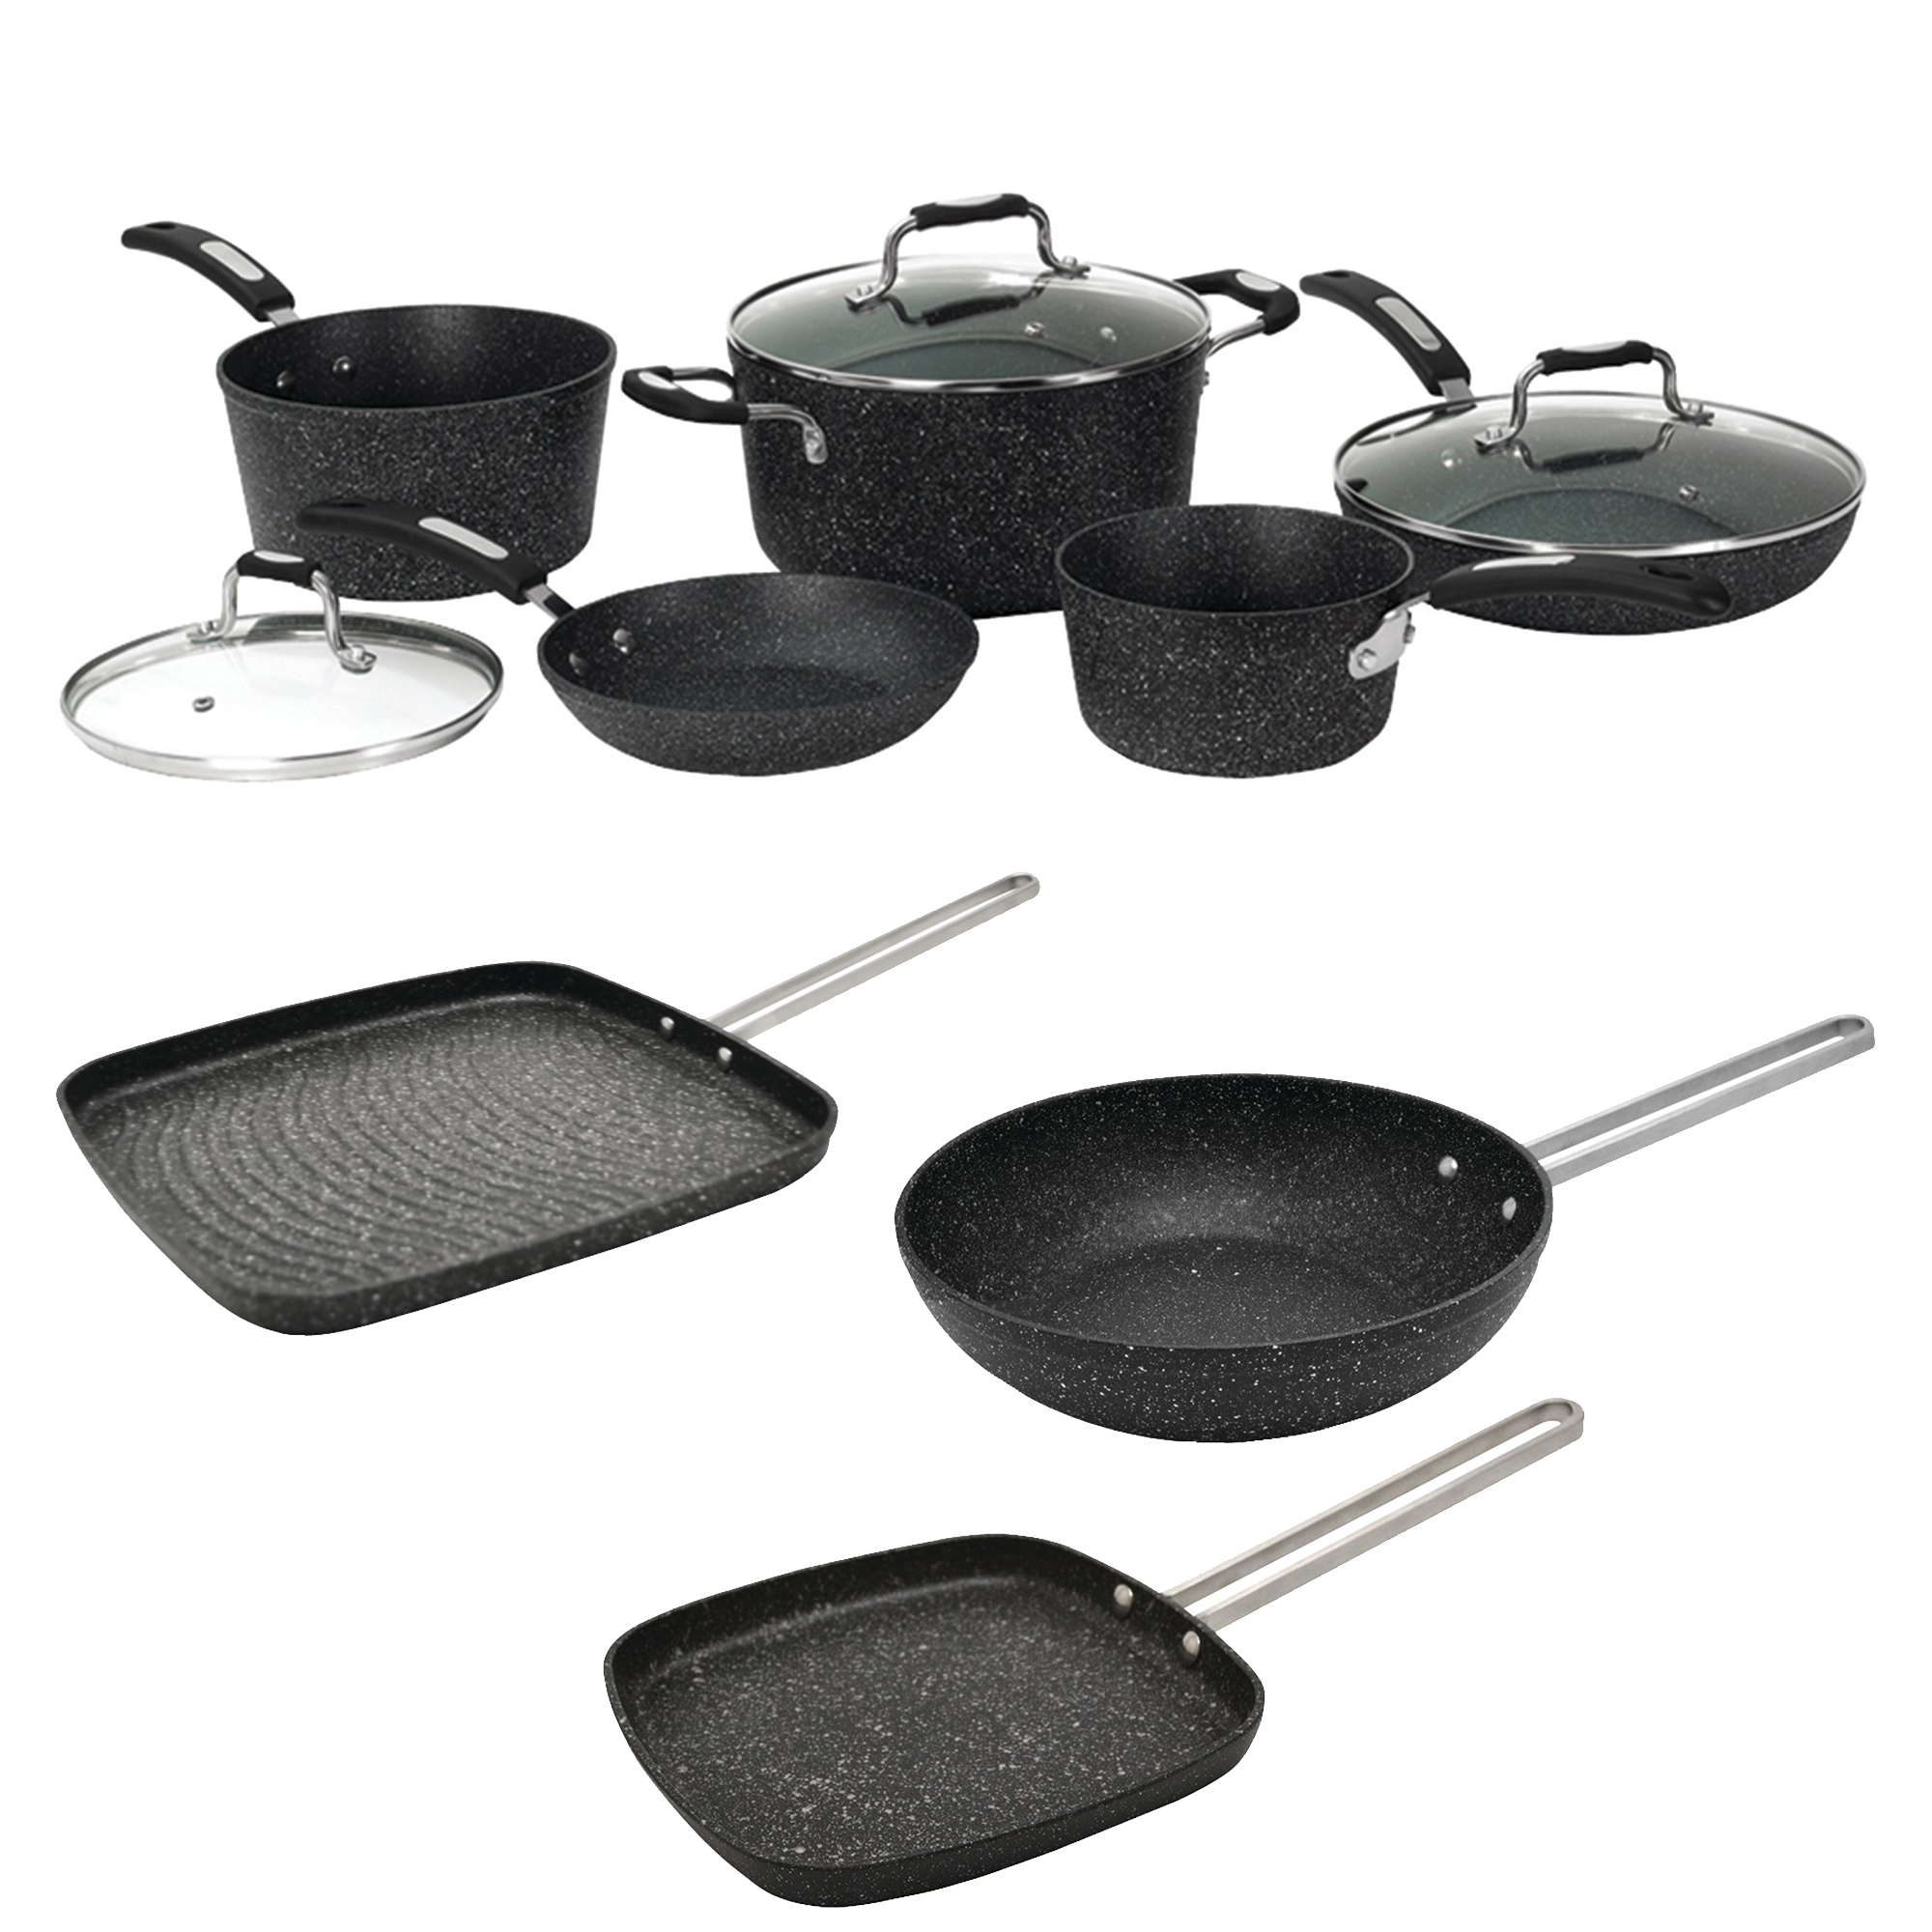 "The Rock By Starfrit 030930-001-0000 8PC Set With Bakelite Handles, 030278-012-0000 6"" Personal Griddle Pan With Steel Handle, 030279-012-0000 7.25"" Personal Wok Pan & 030280-006-0000 10"" Grill Pan"